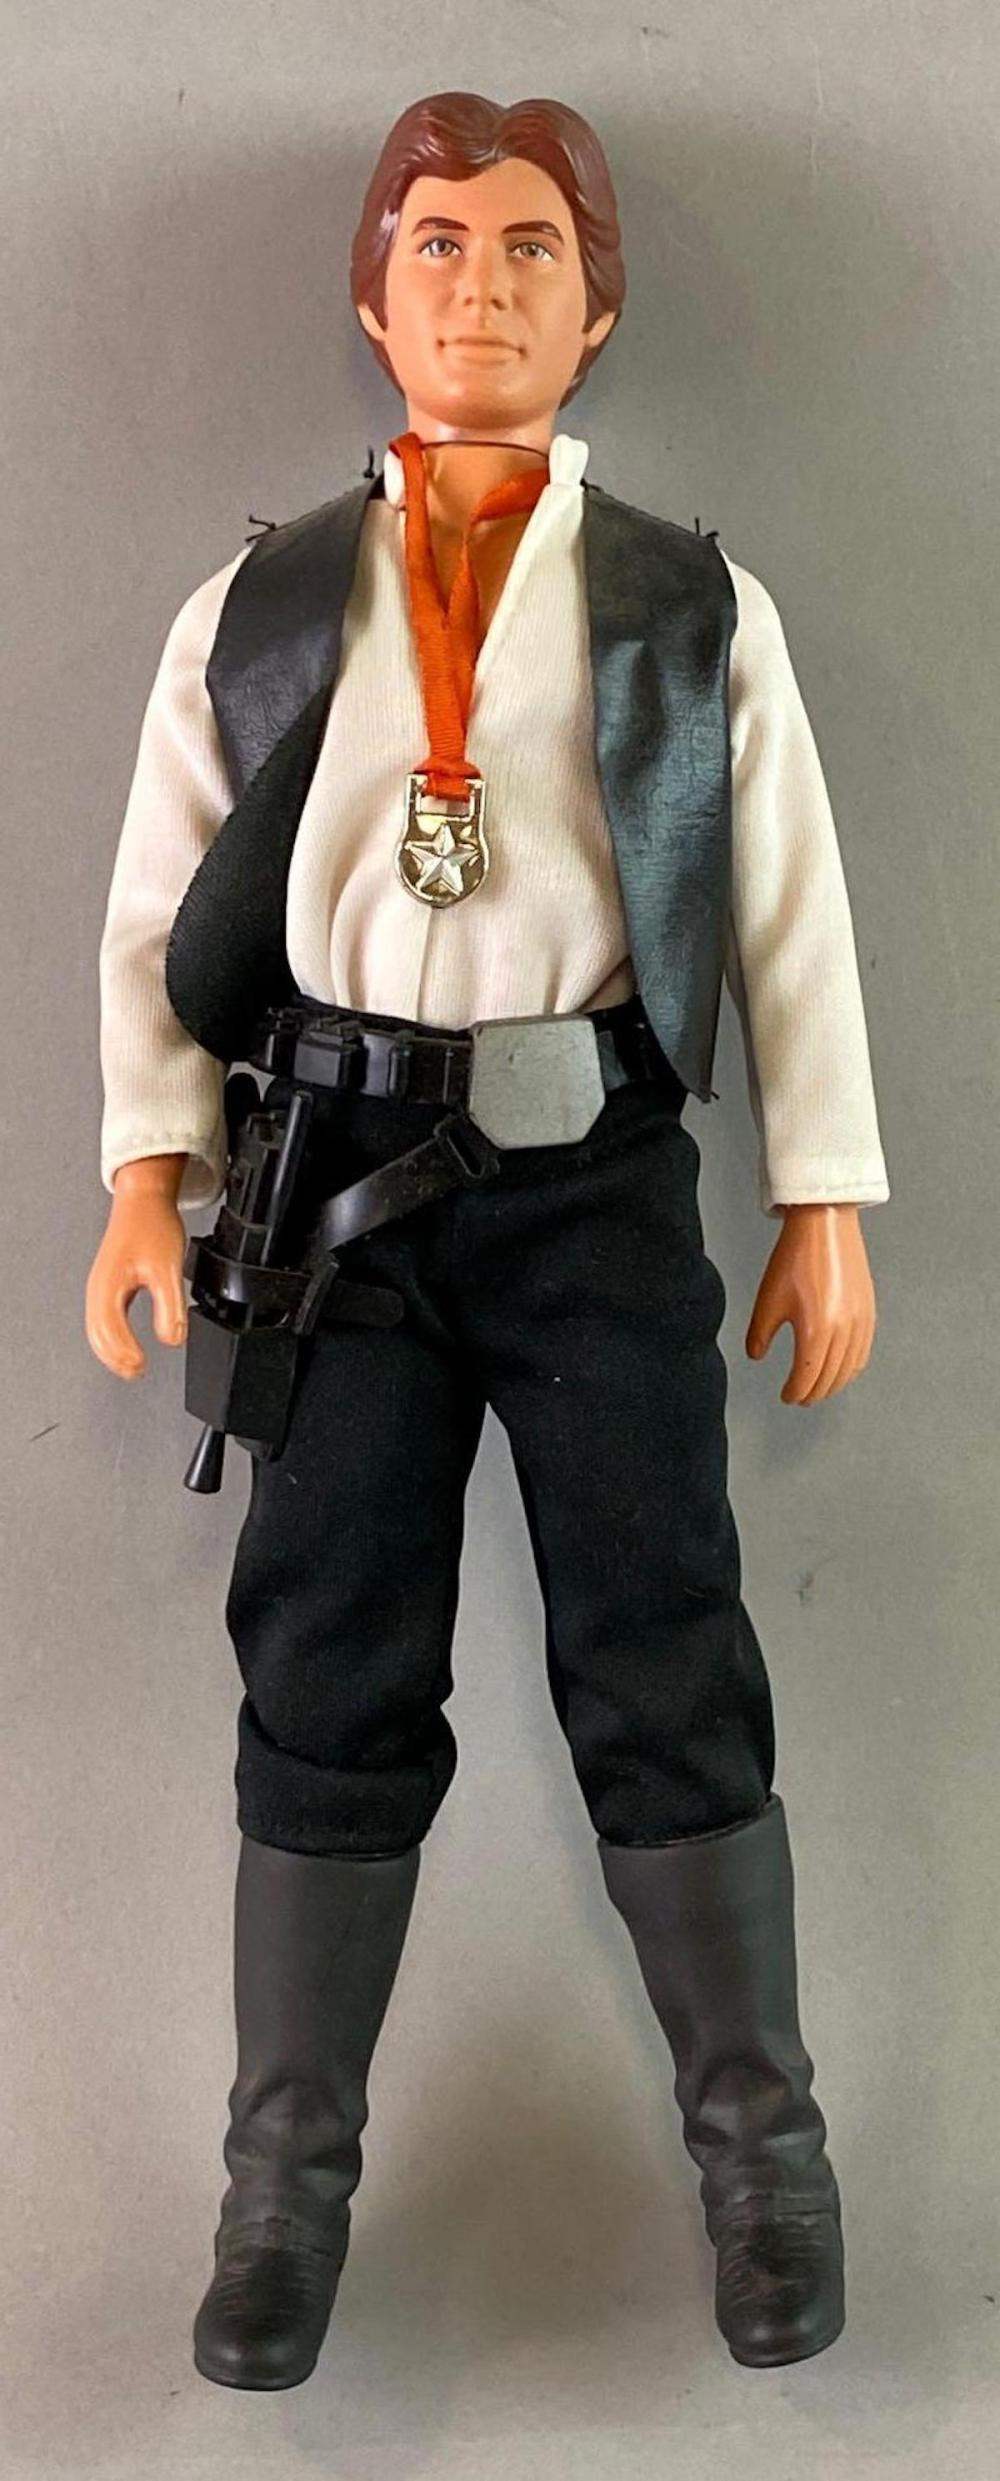 Kenner Star Wars Han Solo Action Figure